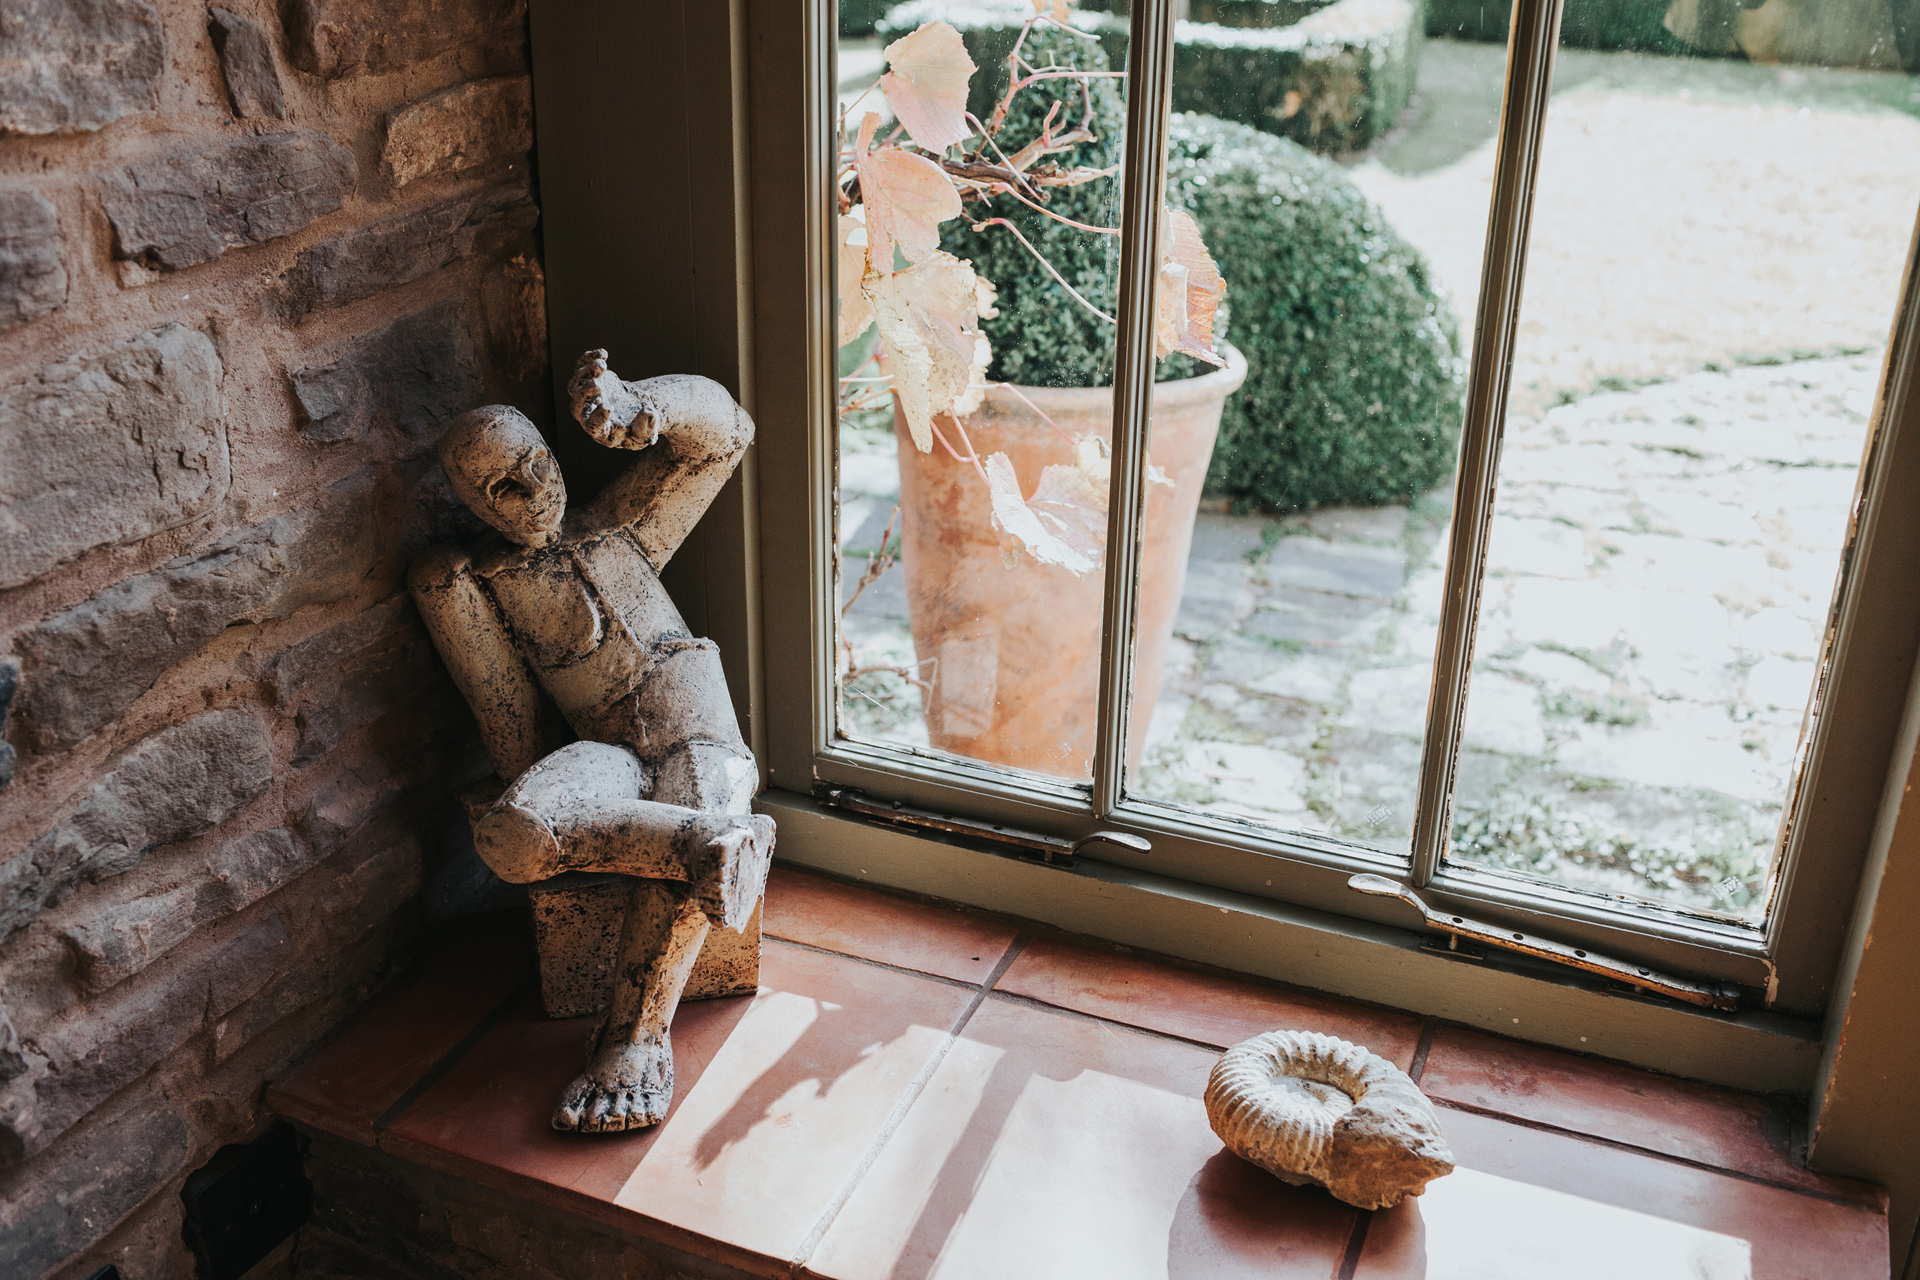 Small statue of man shielding himself from the sun on the windowsill at Deswall Court.